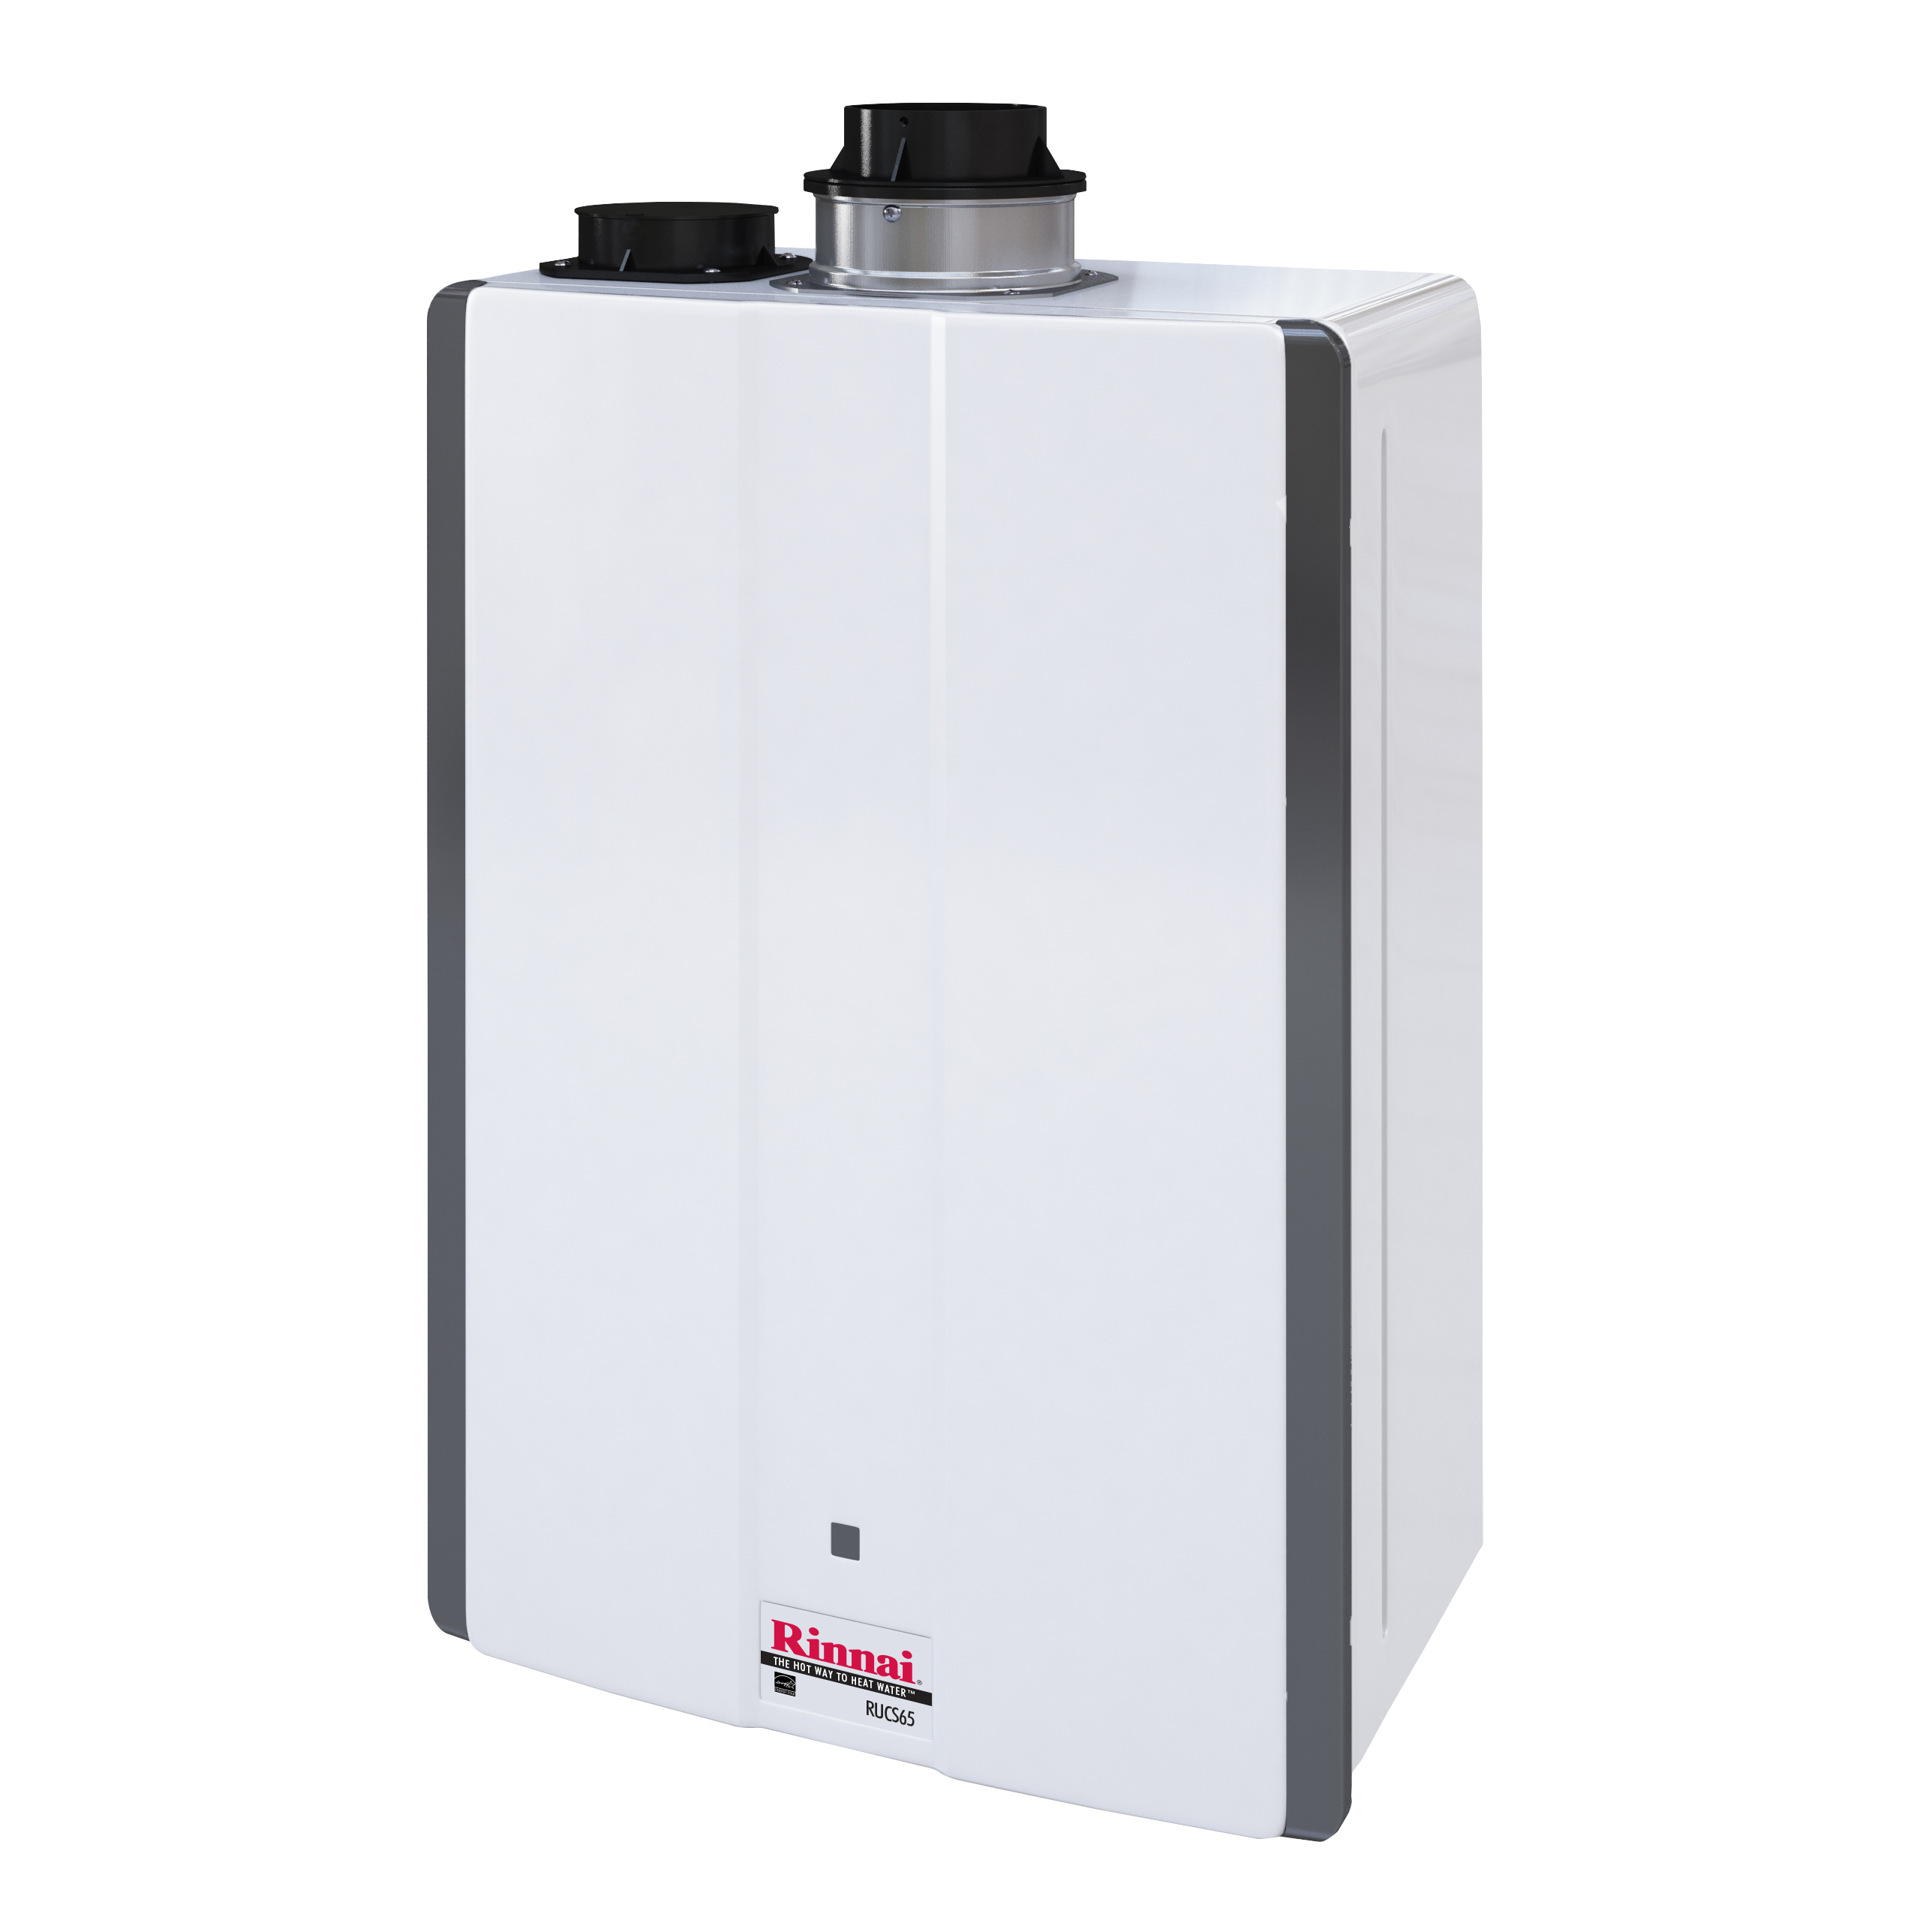 Rucs65in Tankless Water Heater Rinnai